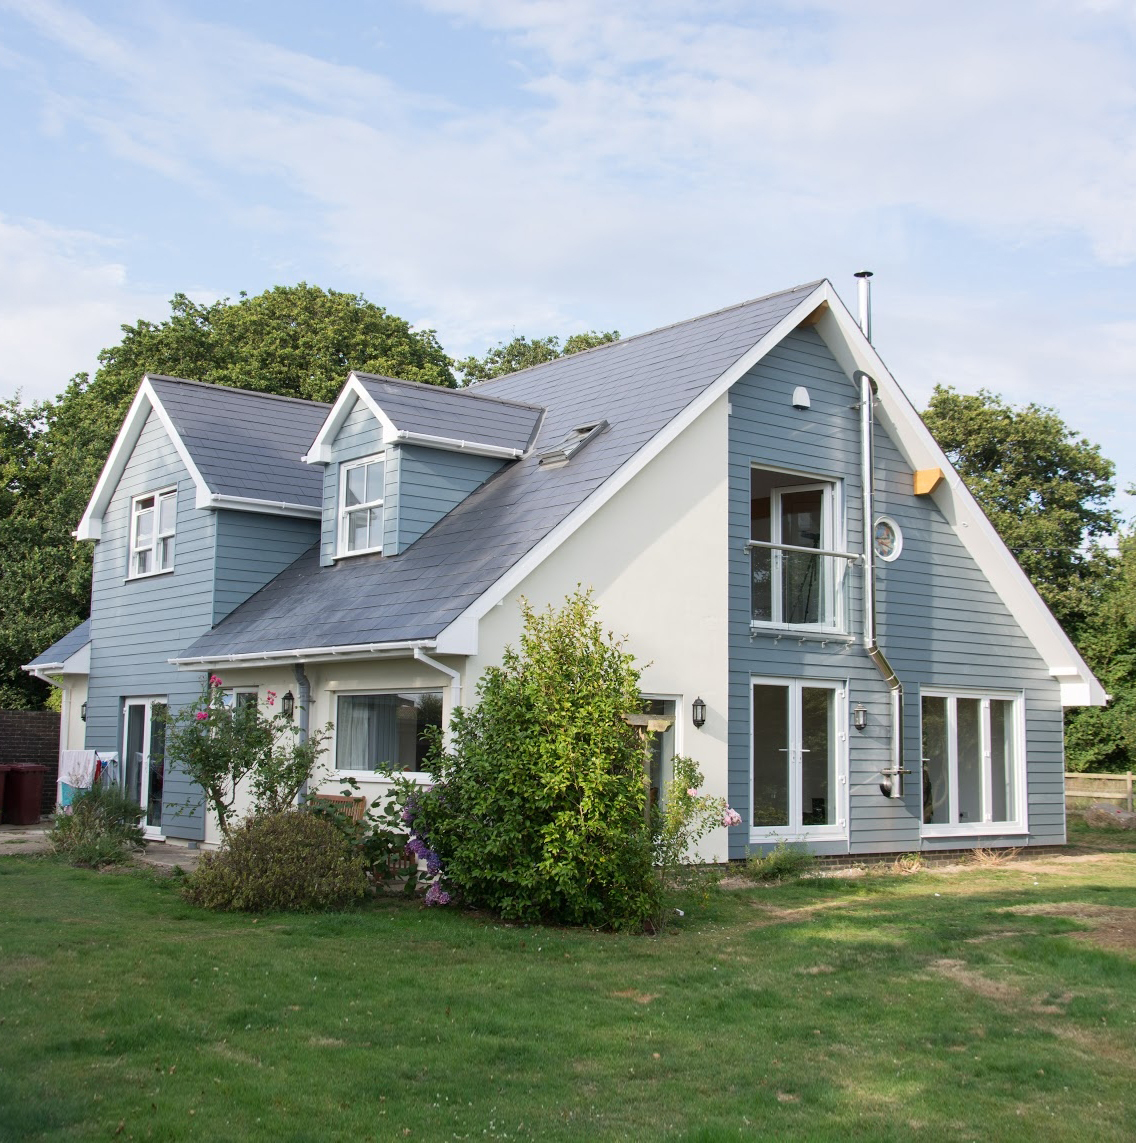 Space Style Home Design Architectural Services In Gosport Home Design Architectural Www